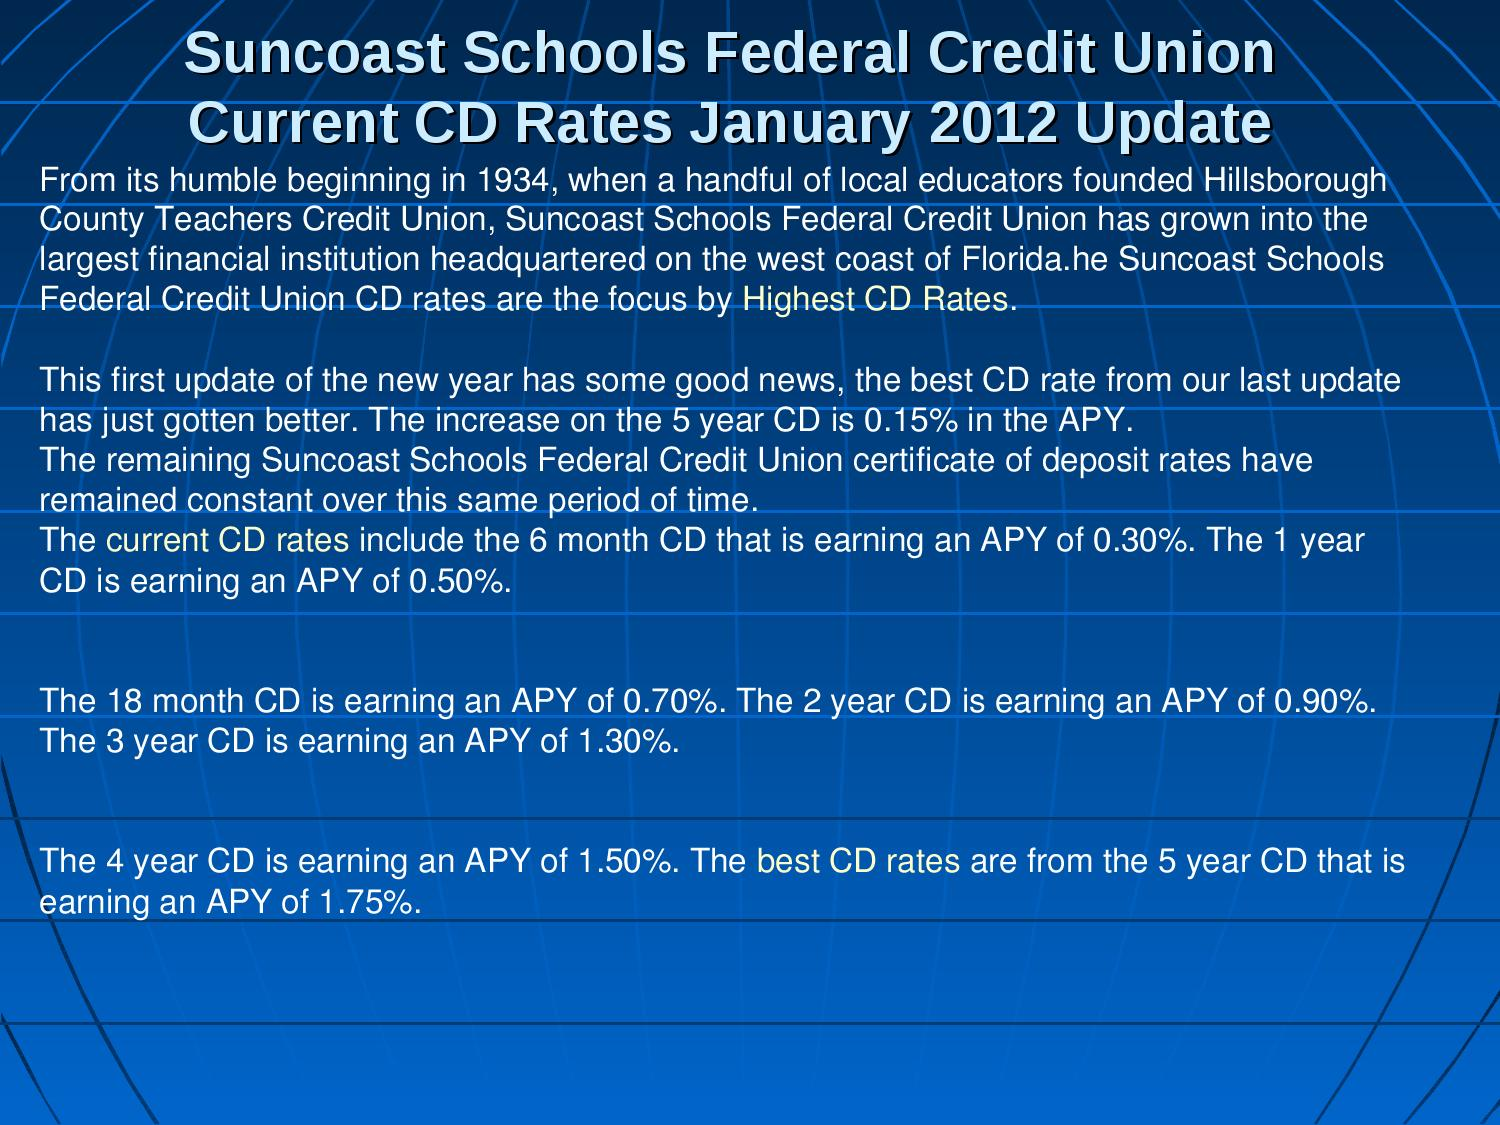 Best Cd Rates >> Suncoast Schools Federal Credit Union Current Cd Rates